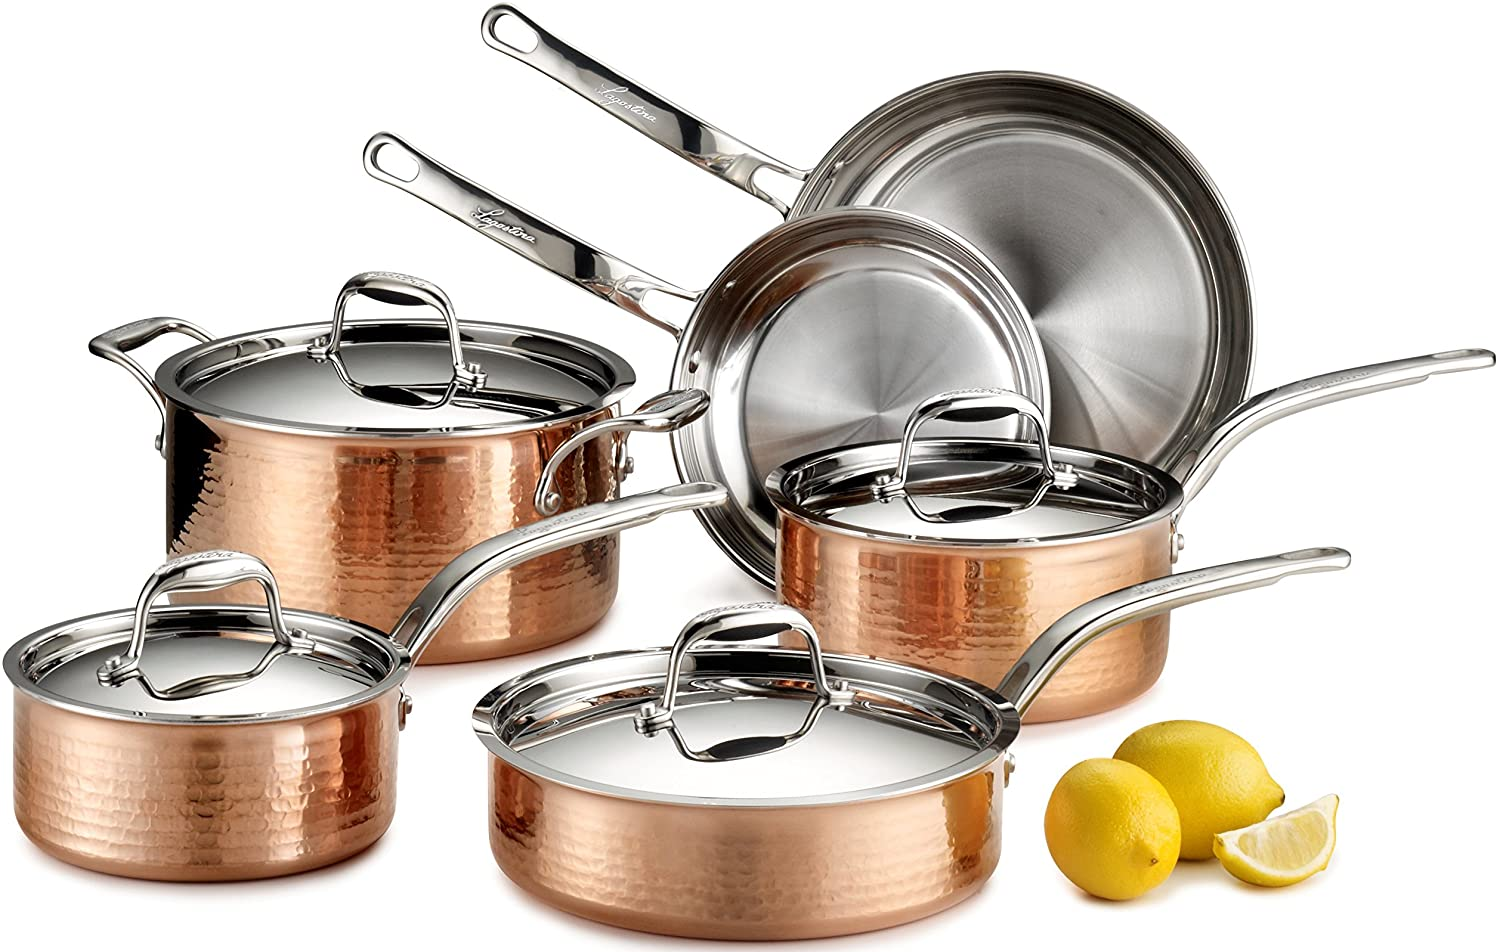 Lagostina Martellata Hammered Copper 18/10 Tri-Ply Stainless Steel Cookware Set, 10-Piece, Copper B014X01E66